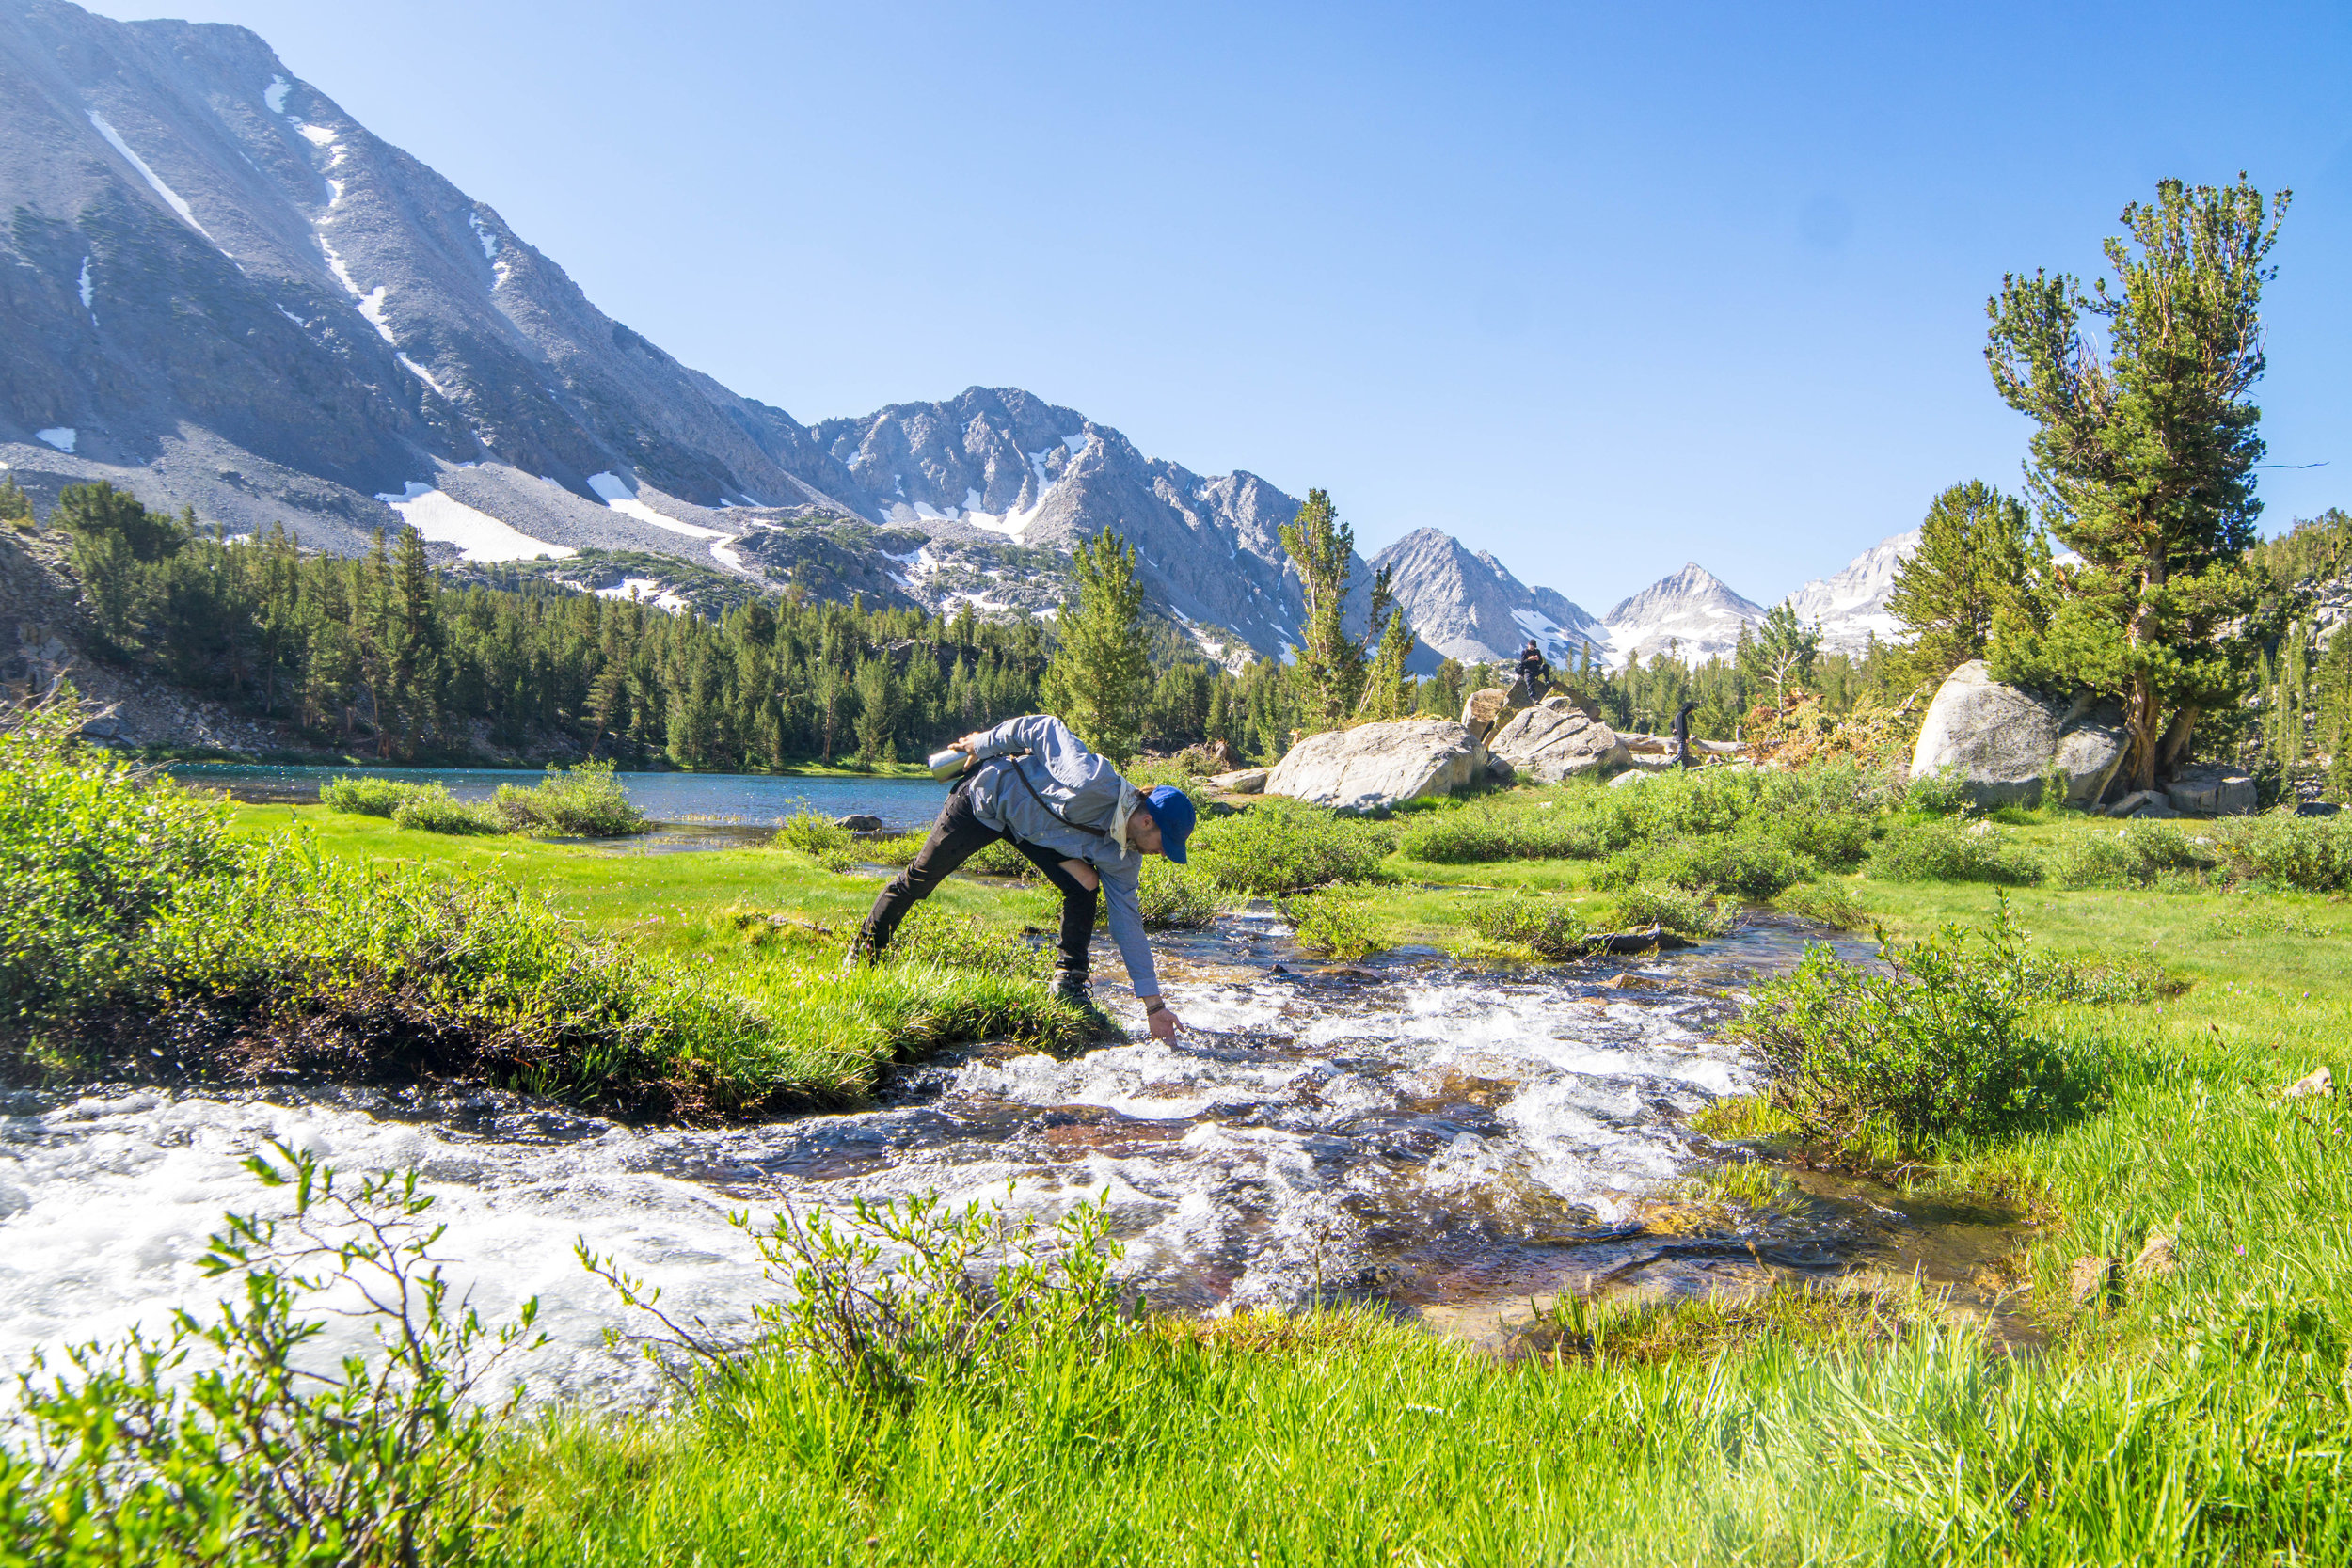 But like a scene out of Switzerland, lush meadows cut by alpine streams were rimmed by snowcapped peaks. The beautiful scenery made the battle with the mosquitos well worth it.